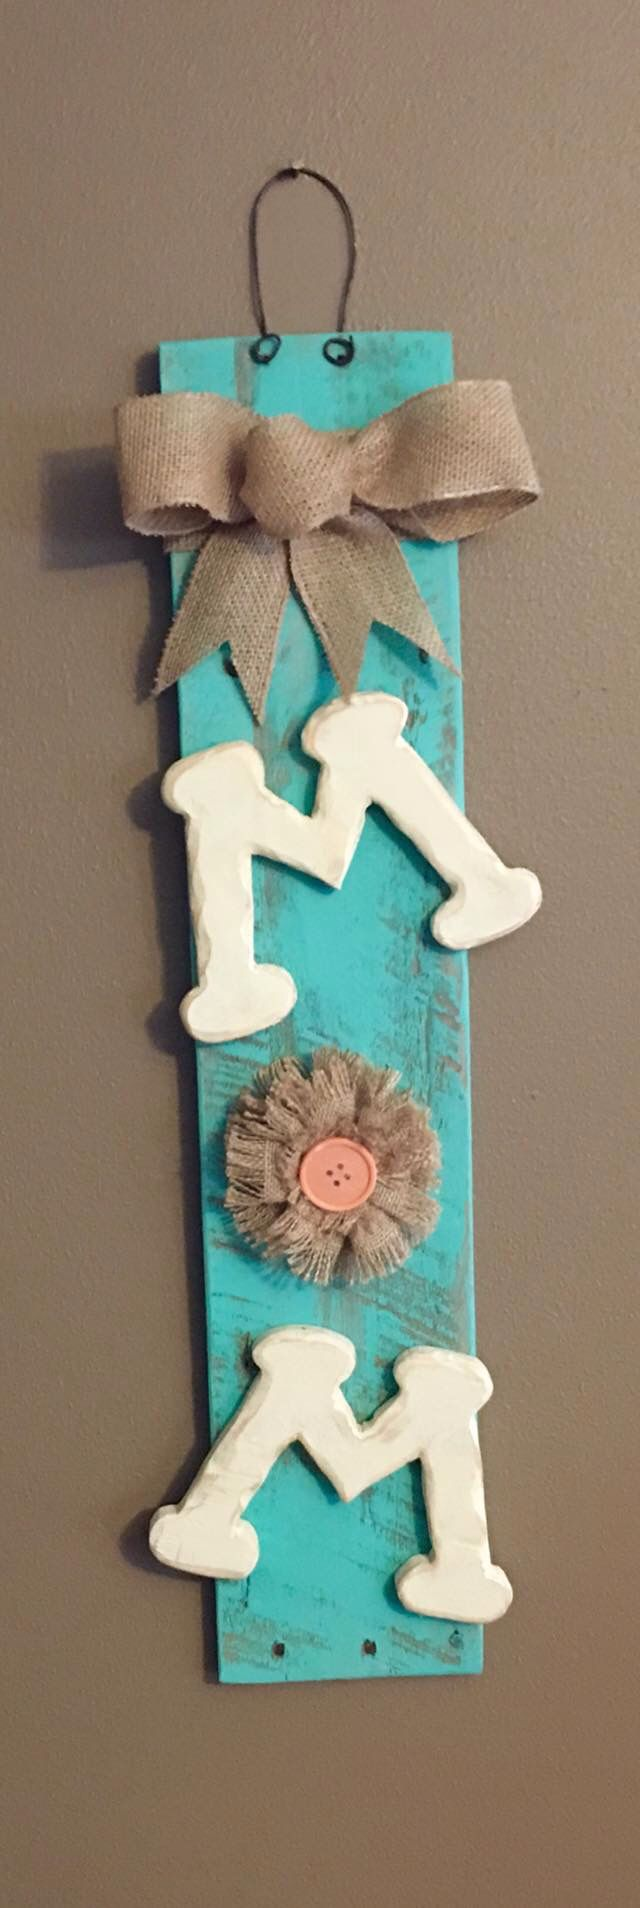 Sign for Mother's Day made from wooden pallet.